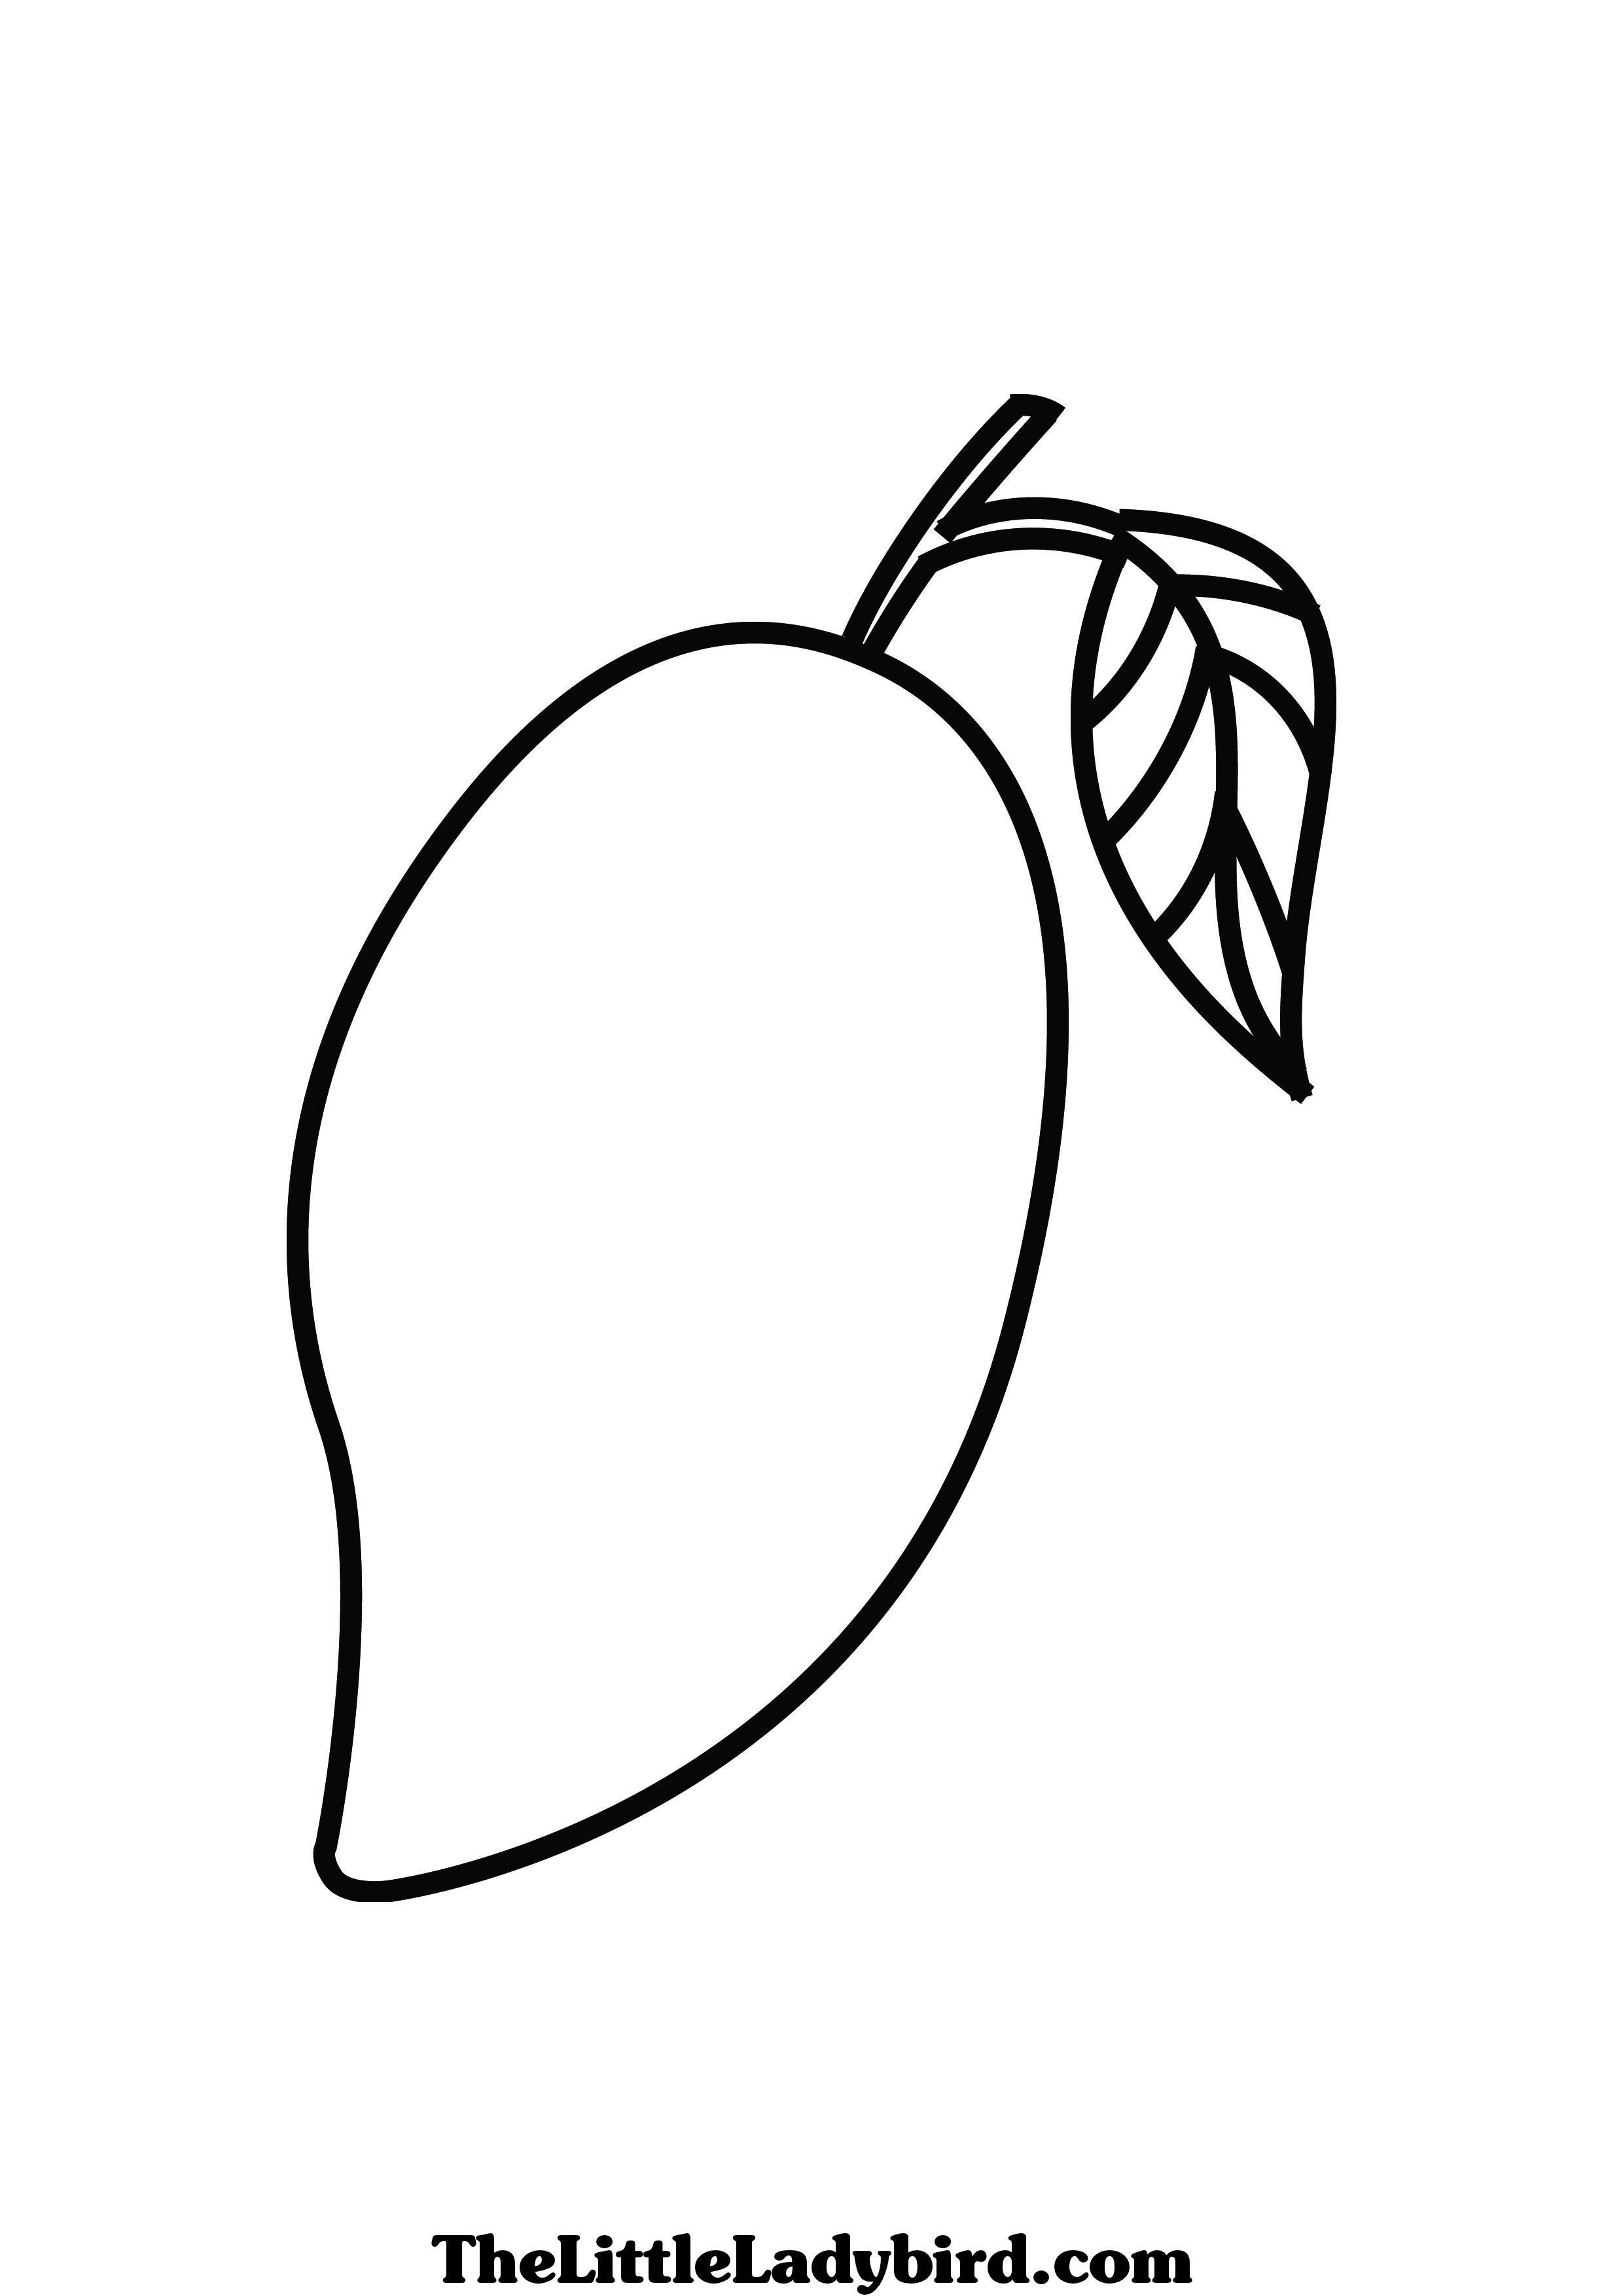 Mango Clipart Colouring Page Mango Colouring Page